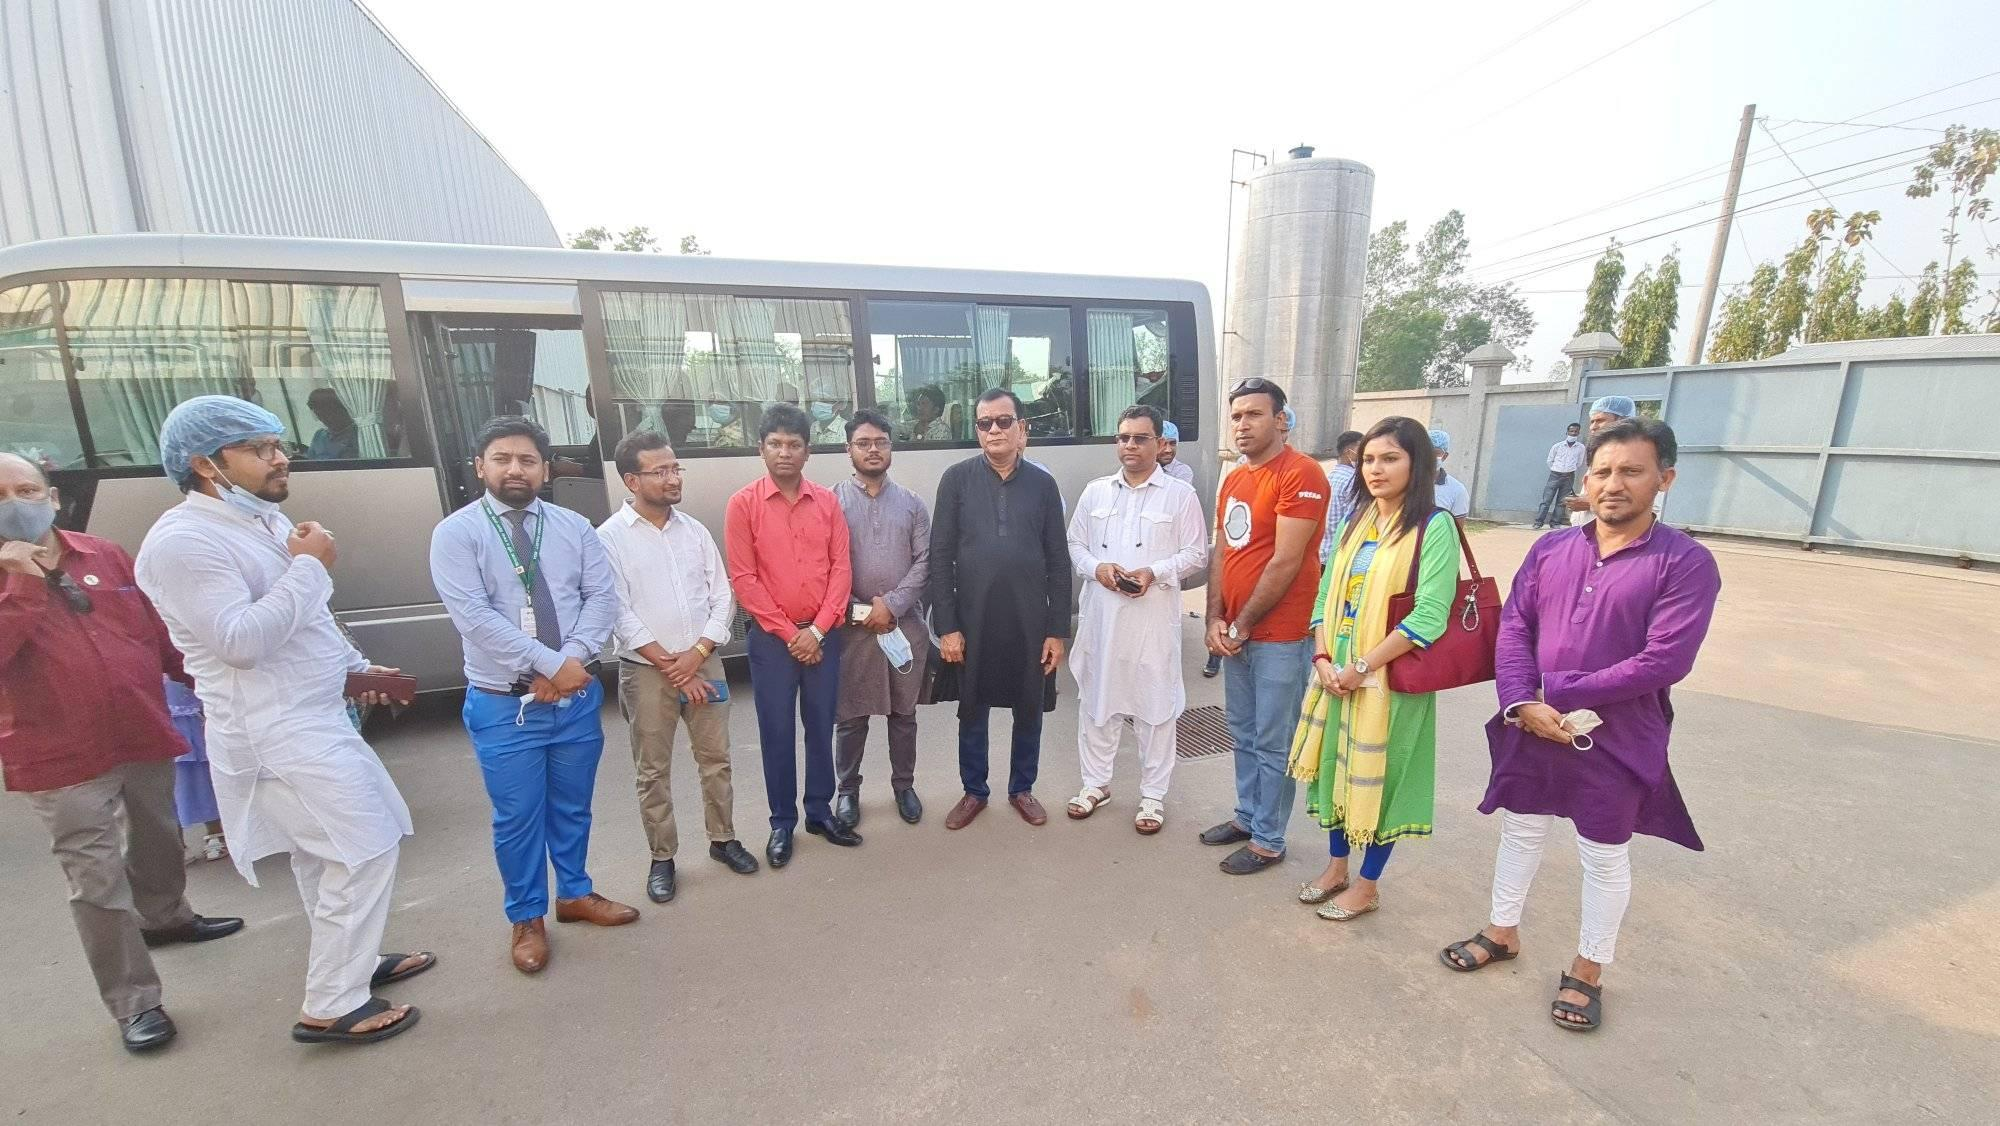 A group from Prime Minister's office visit our factory